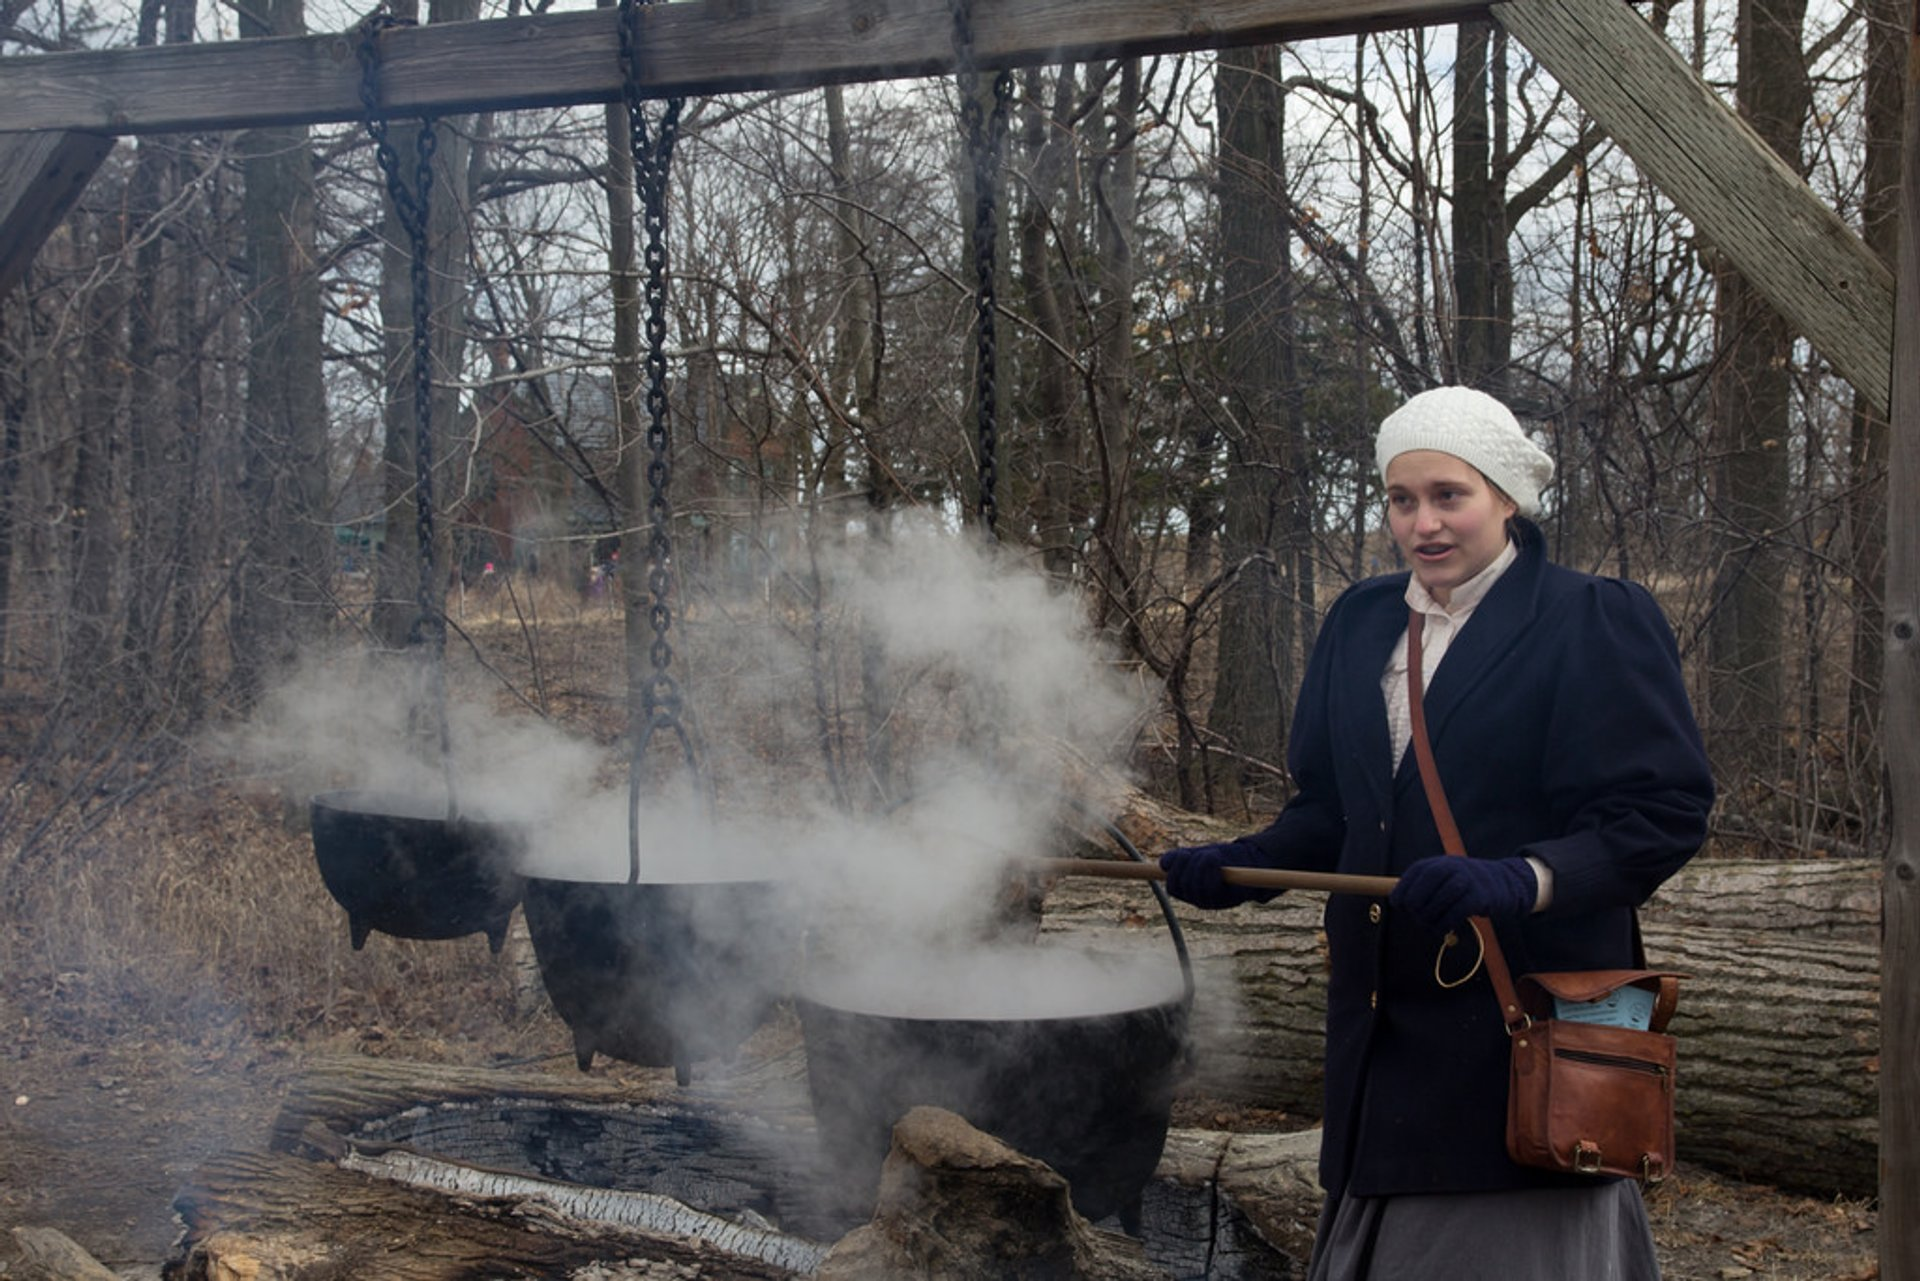 Cooking fresh maple syrup in Bronte Creek Maple Syrup Festival 2019